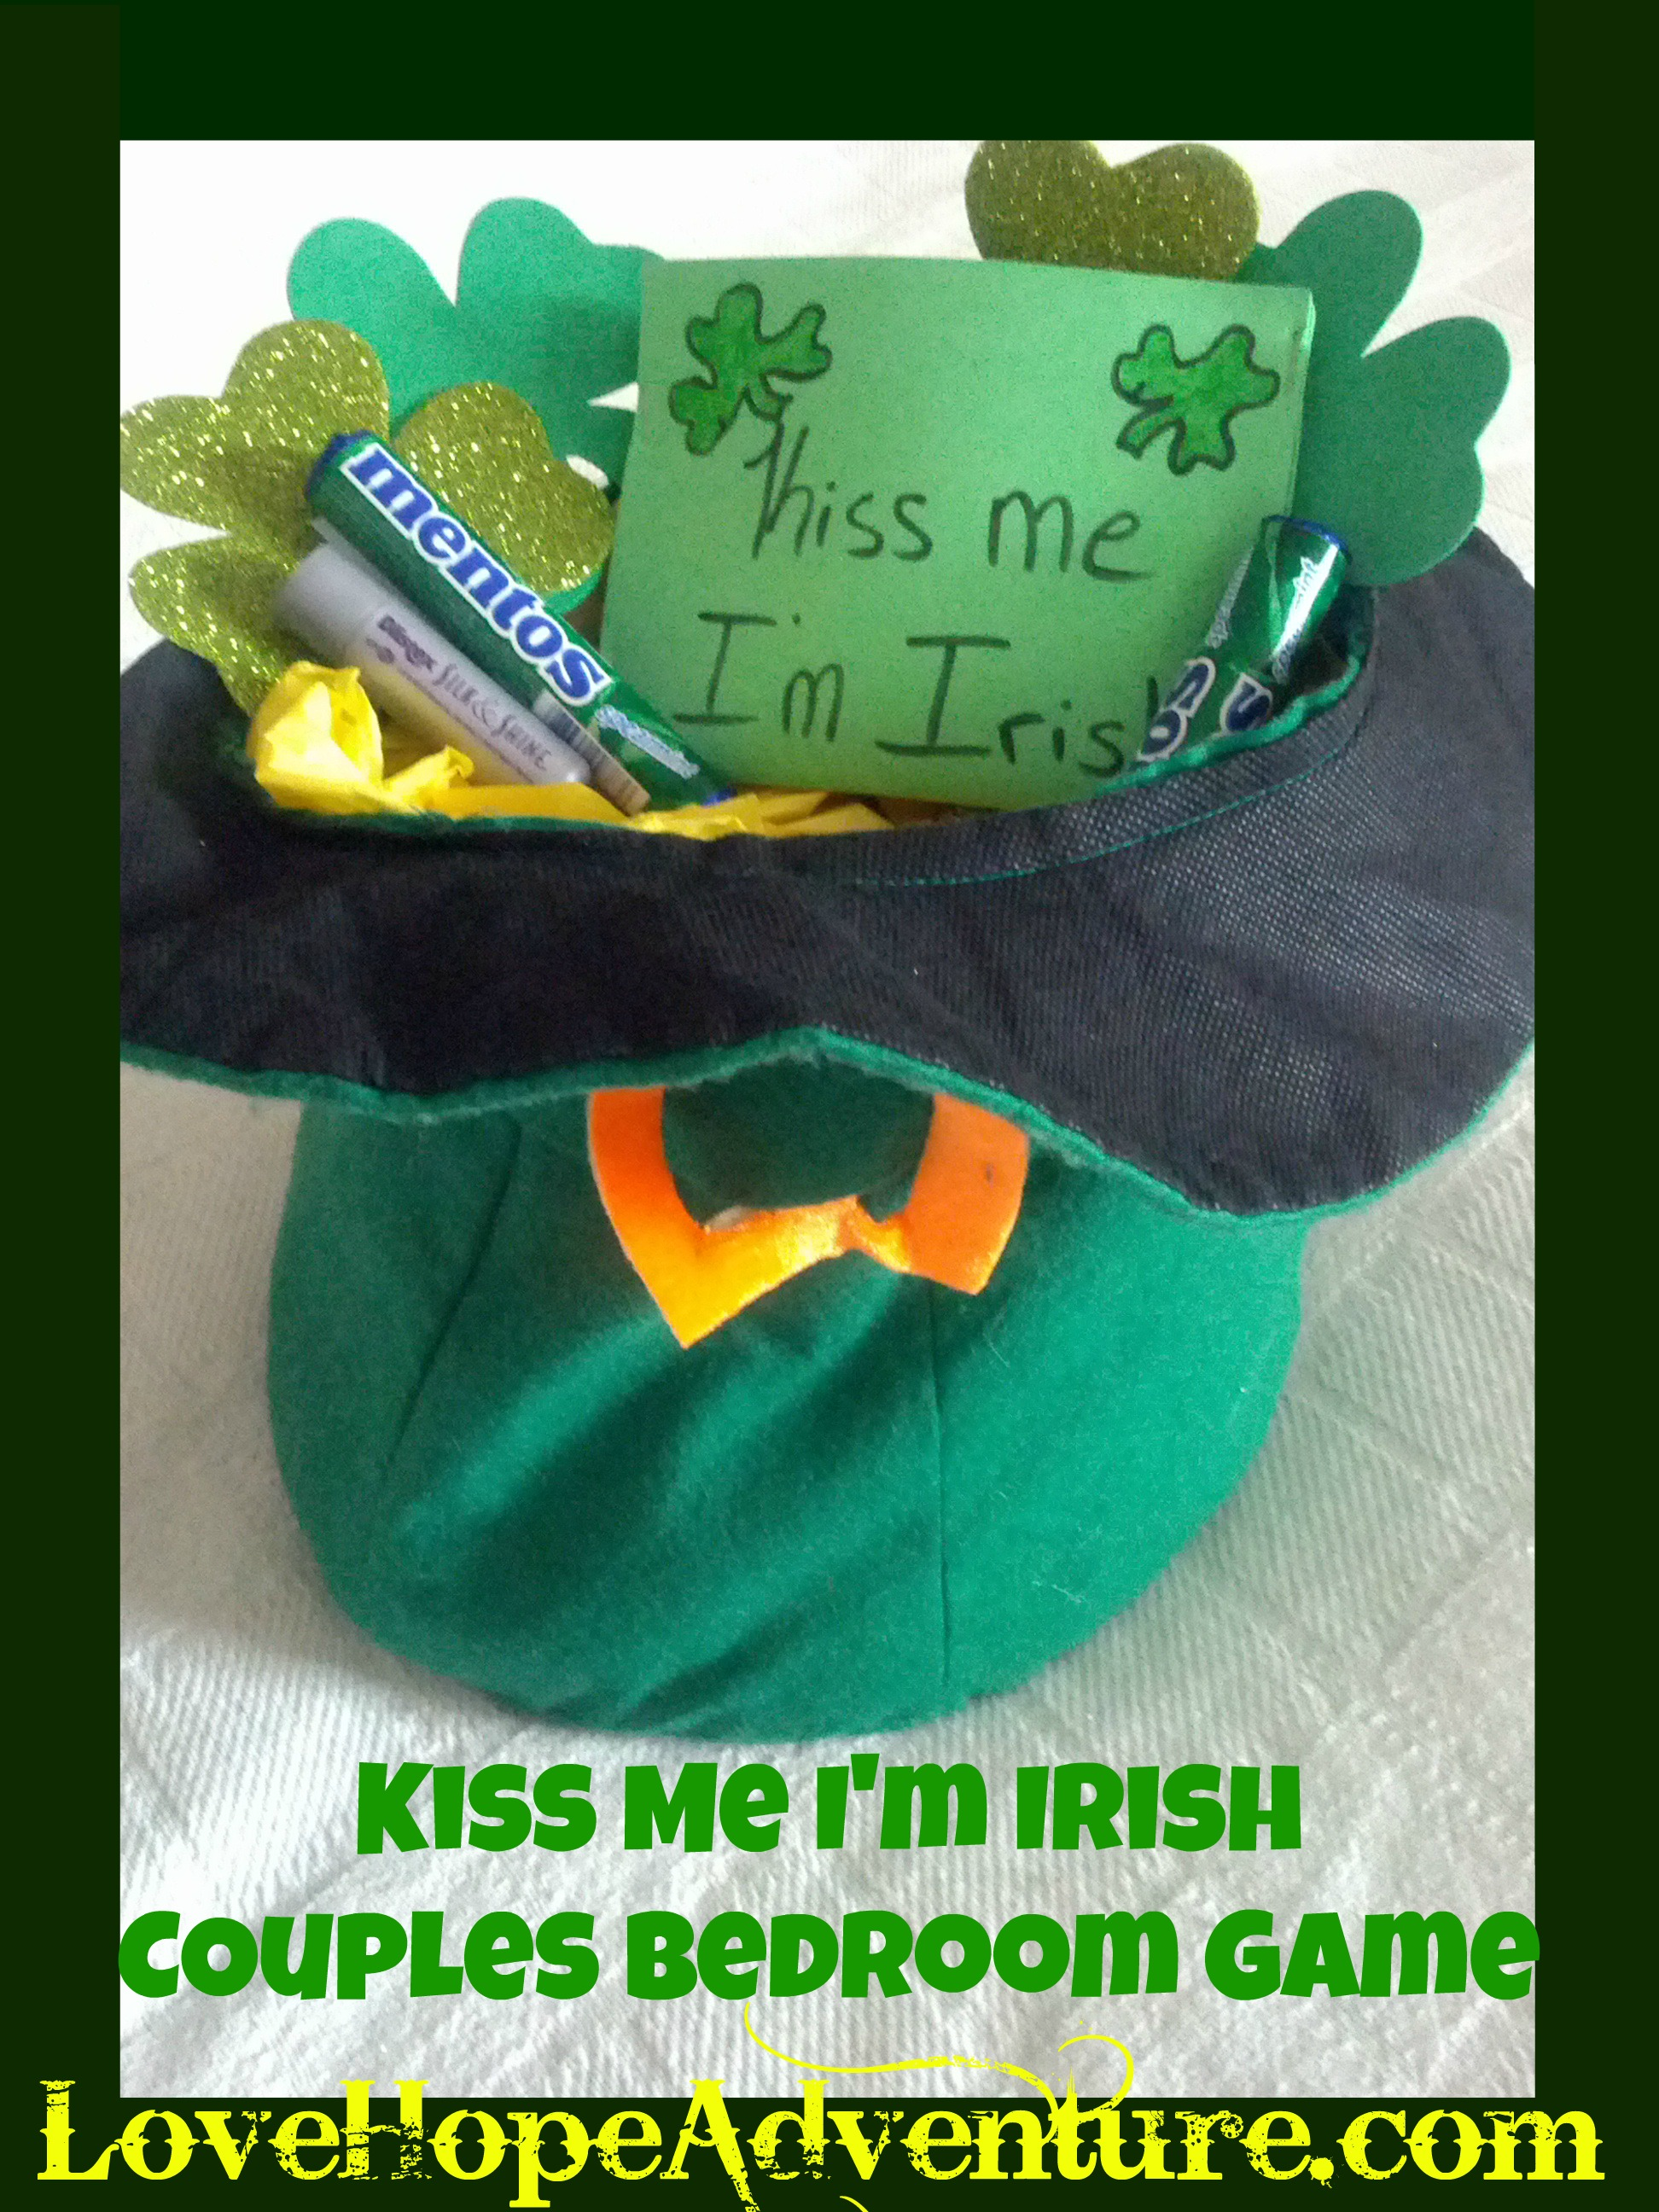 kiss-me-Im-irish-bedroom-game-picture